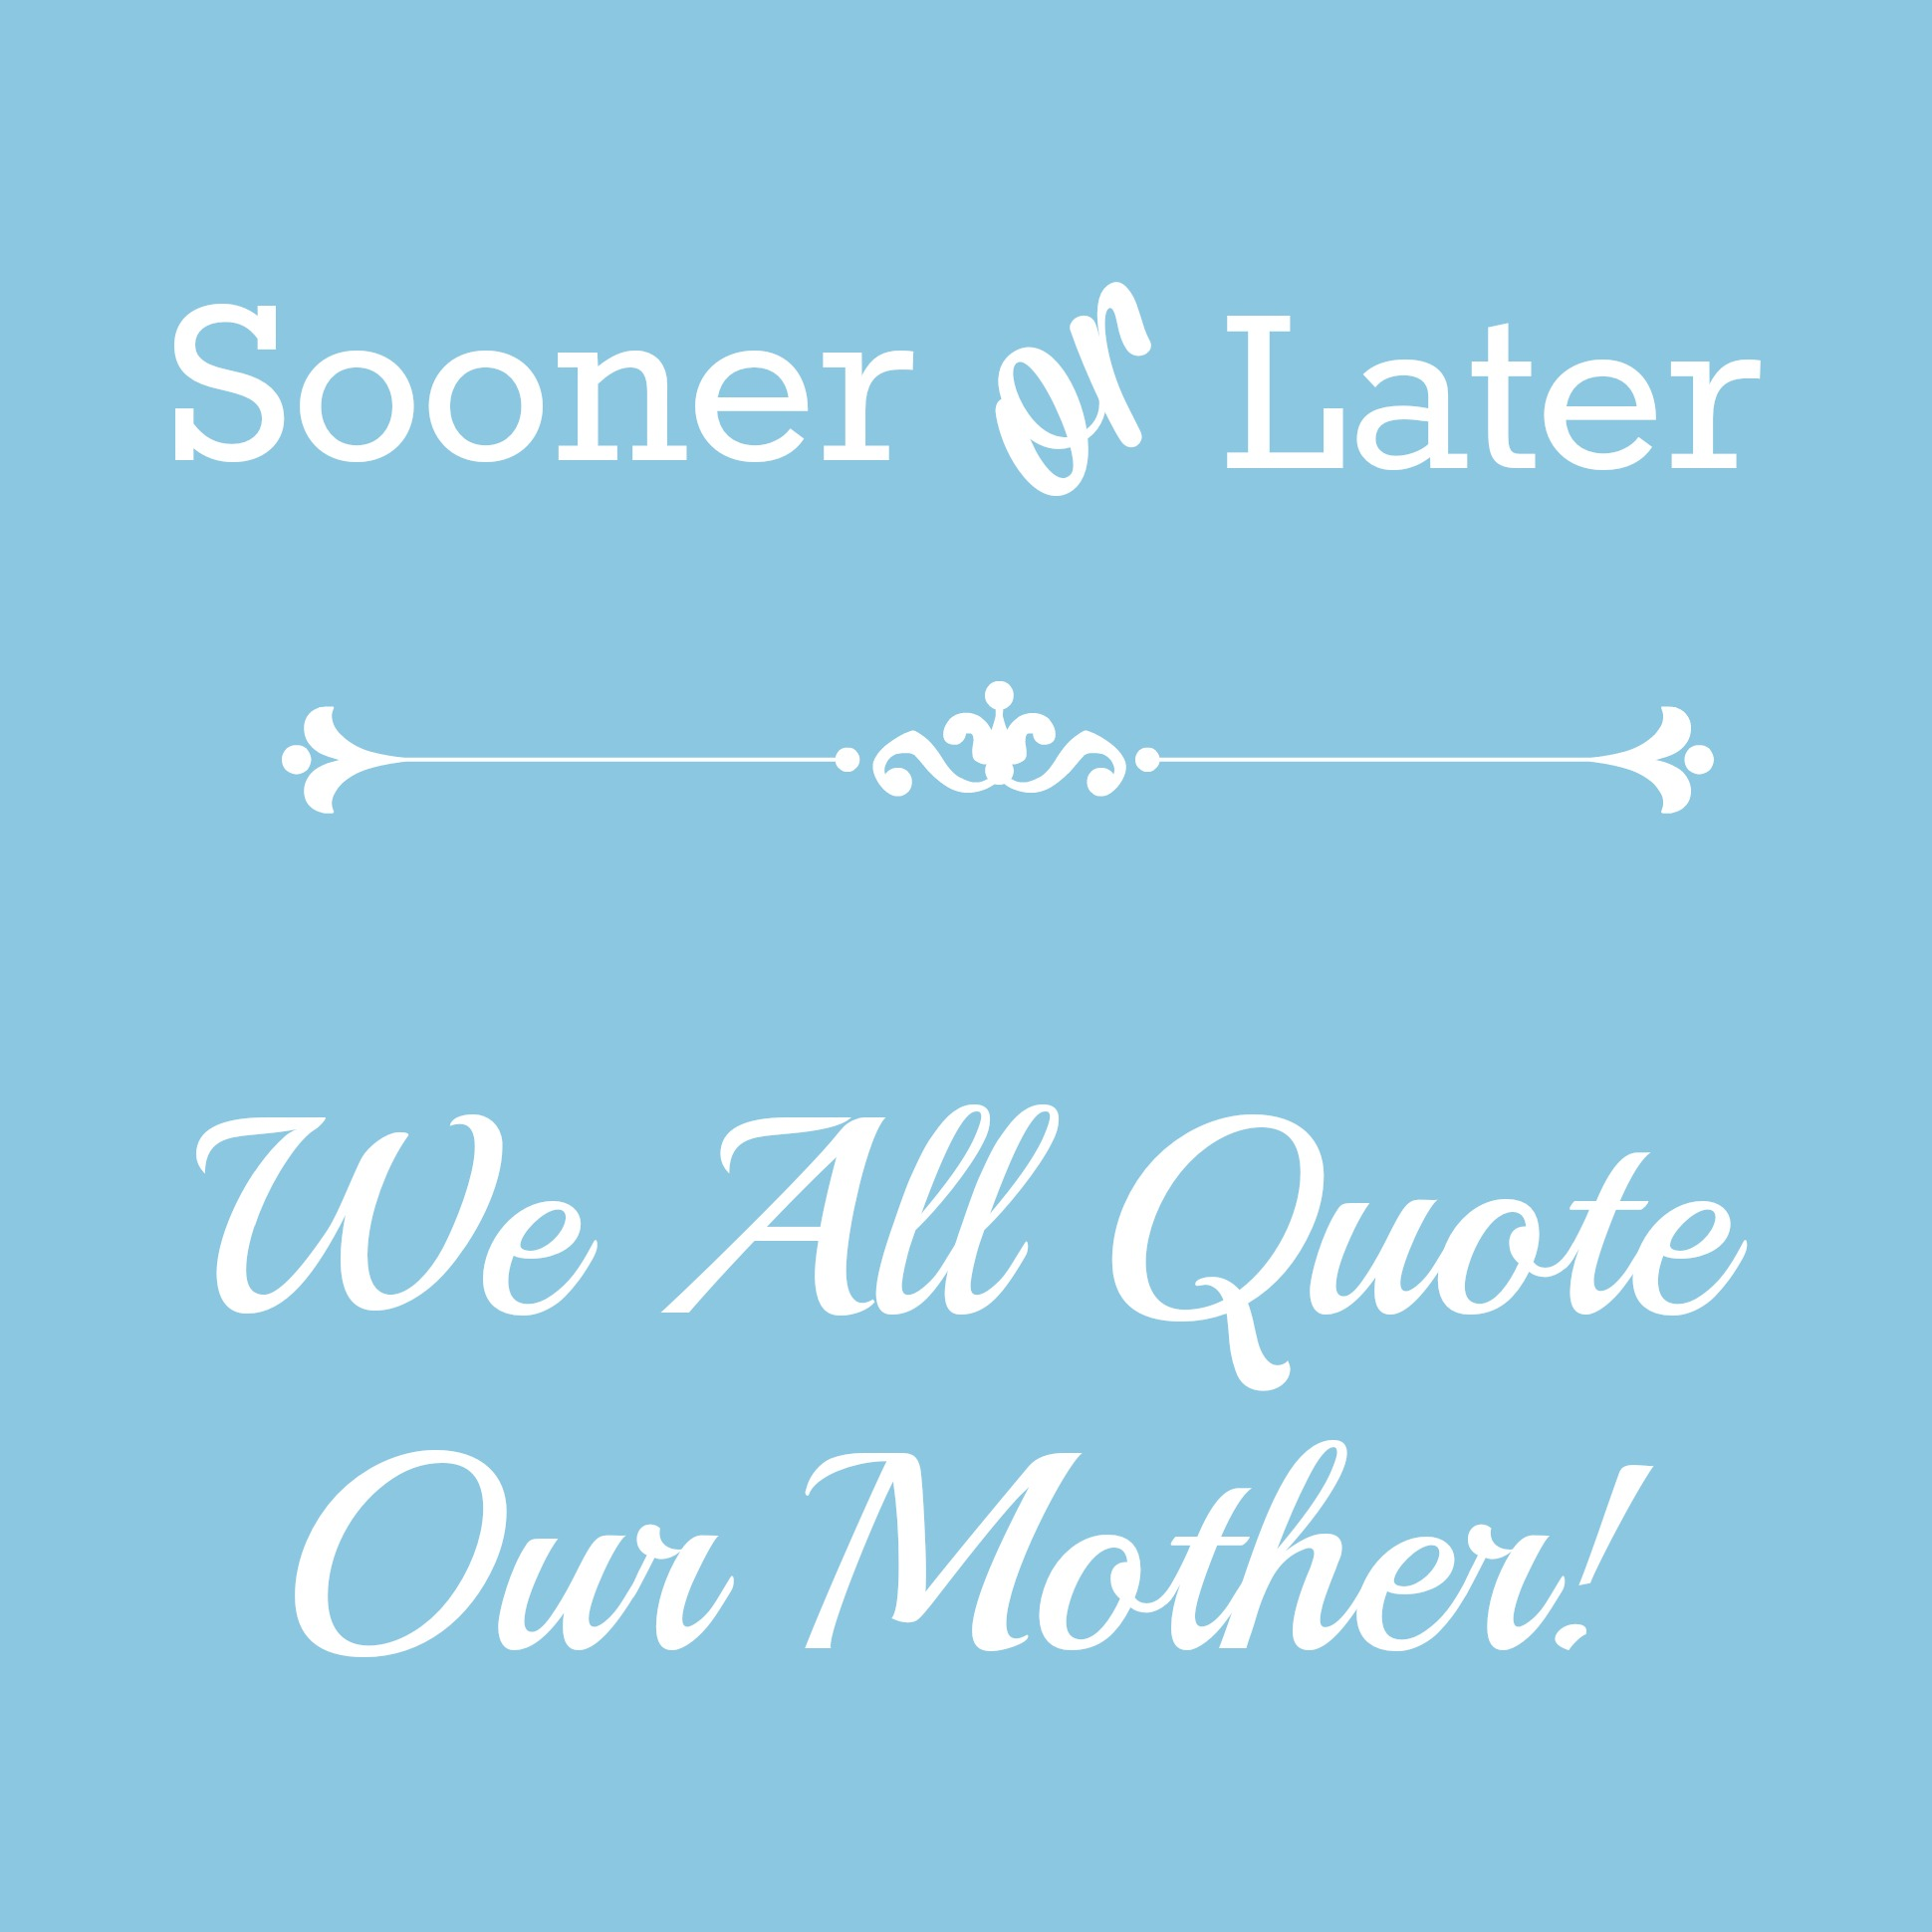 Mom To Son Quotes Mom To Son Quotes New The Best Mother And Son Quotes Disney Baby